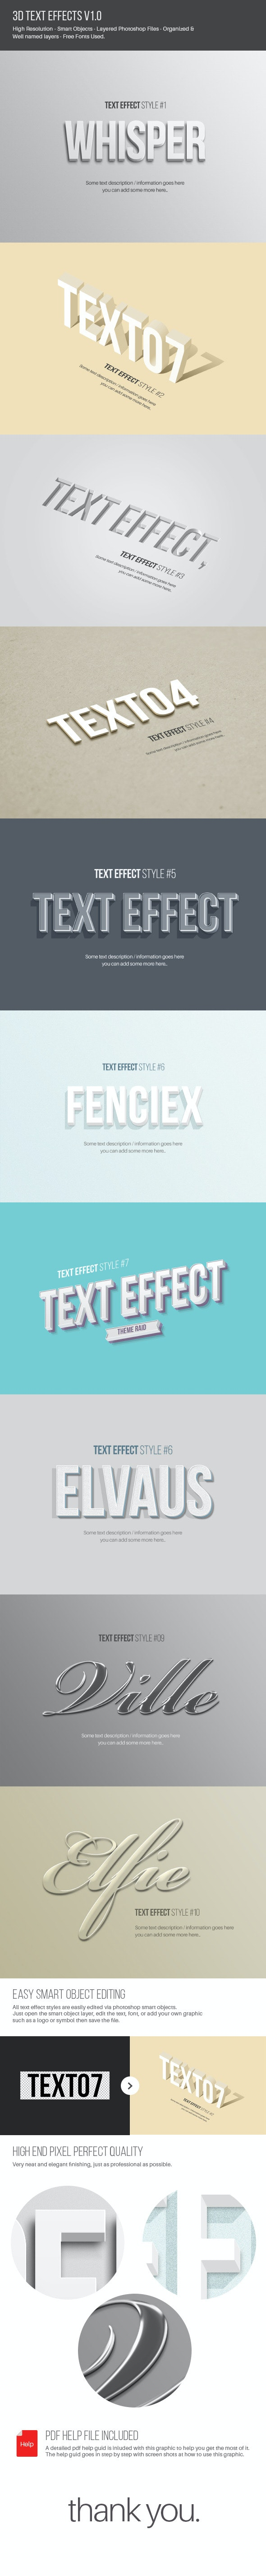 Text Effects V1.0 - Text Effects Actions